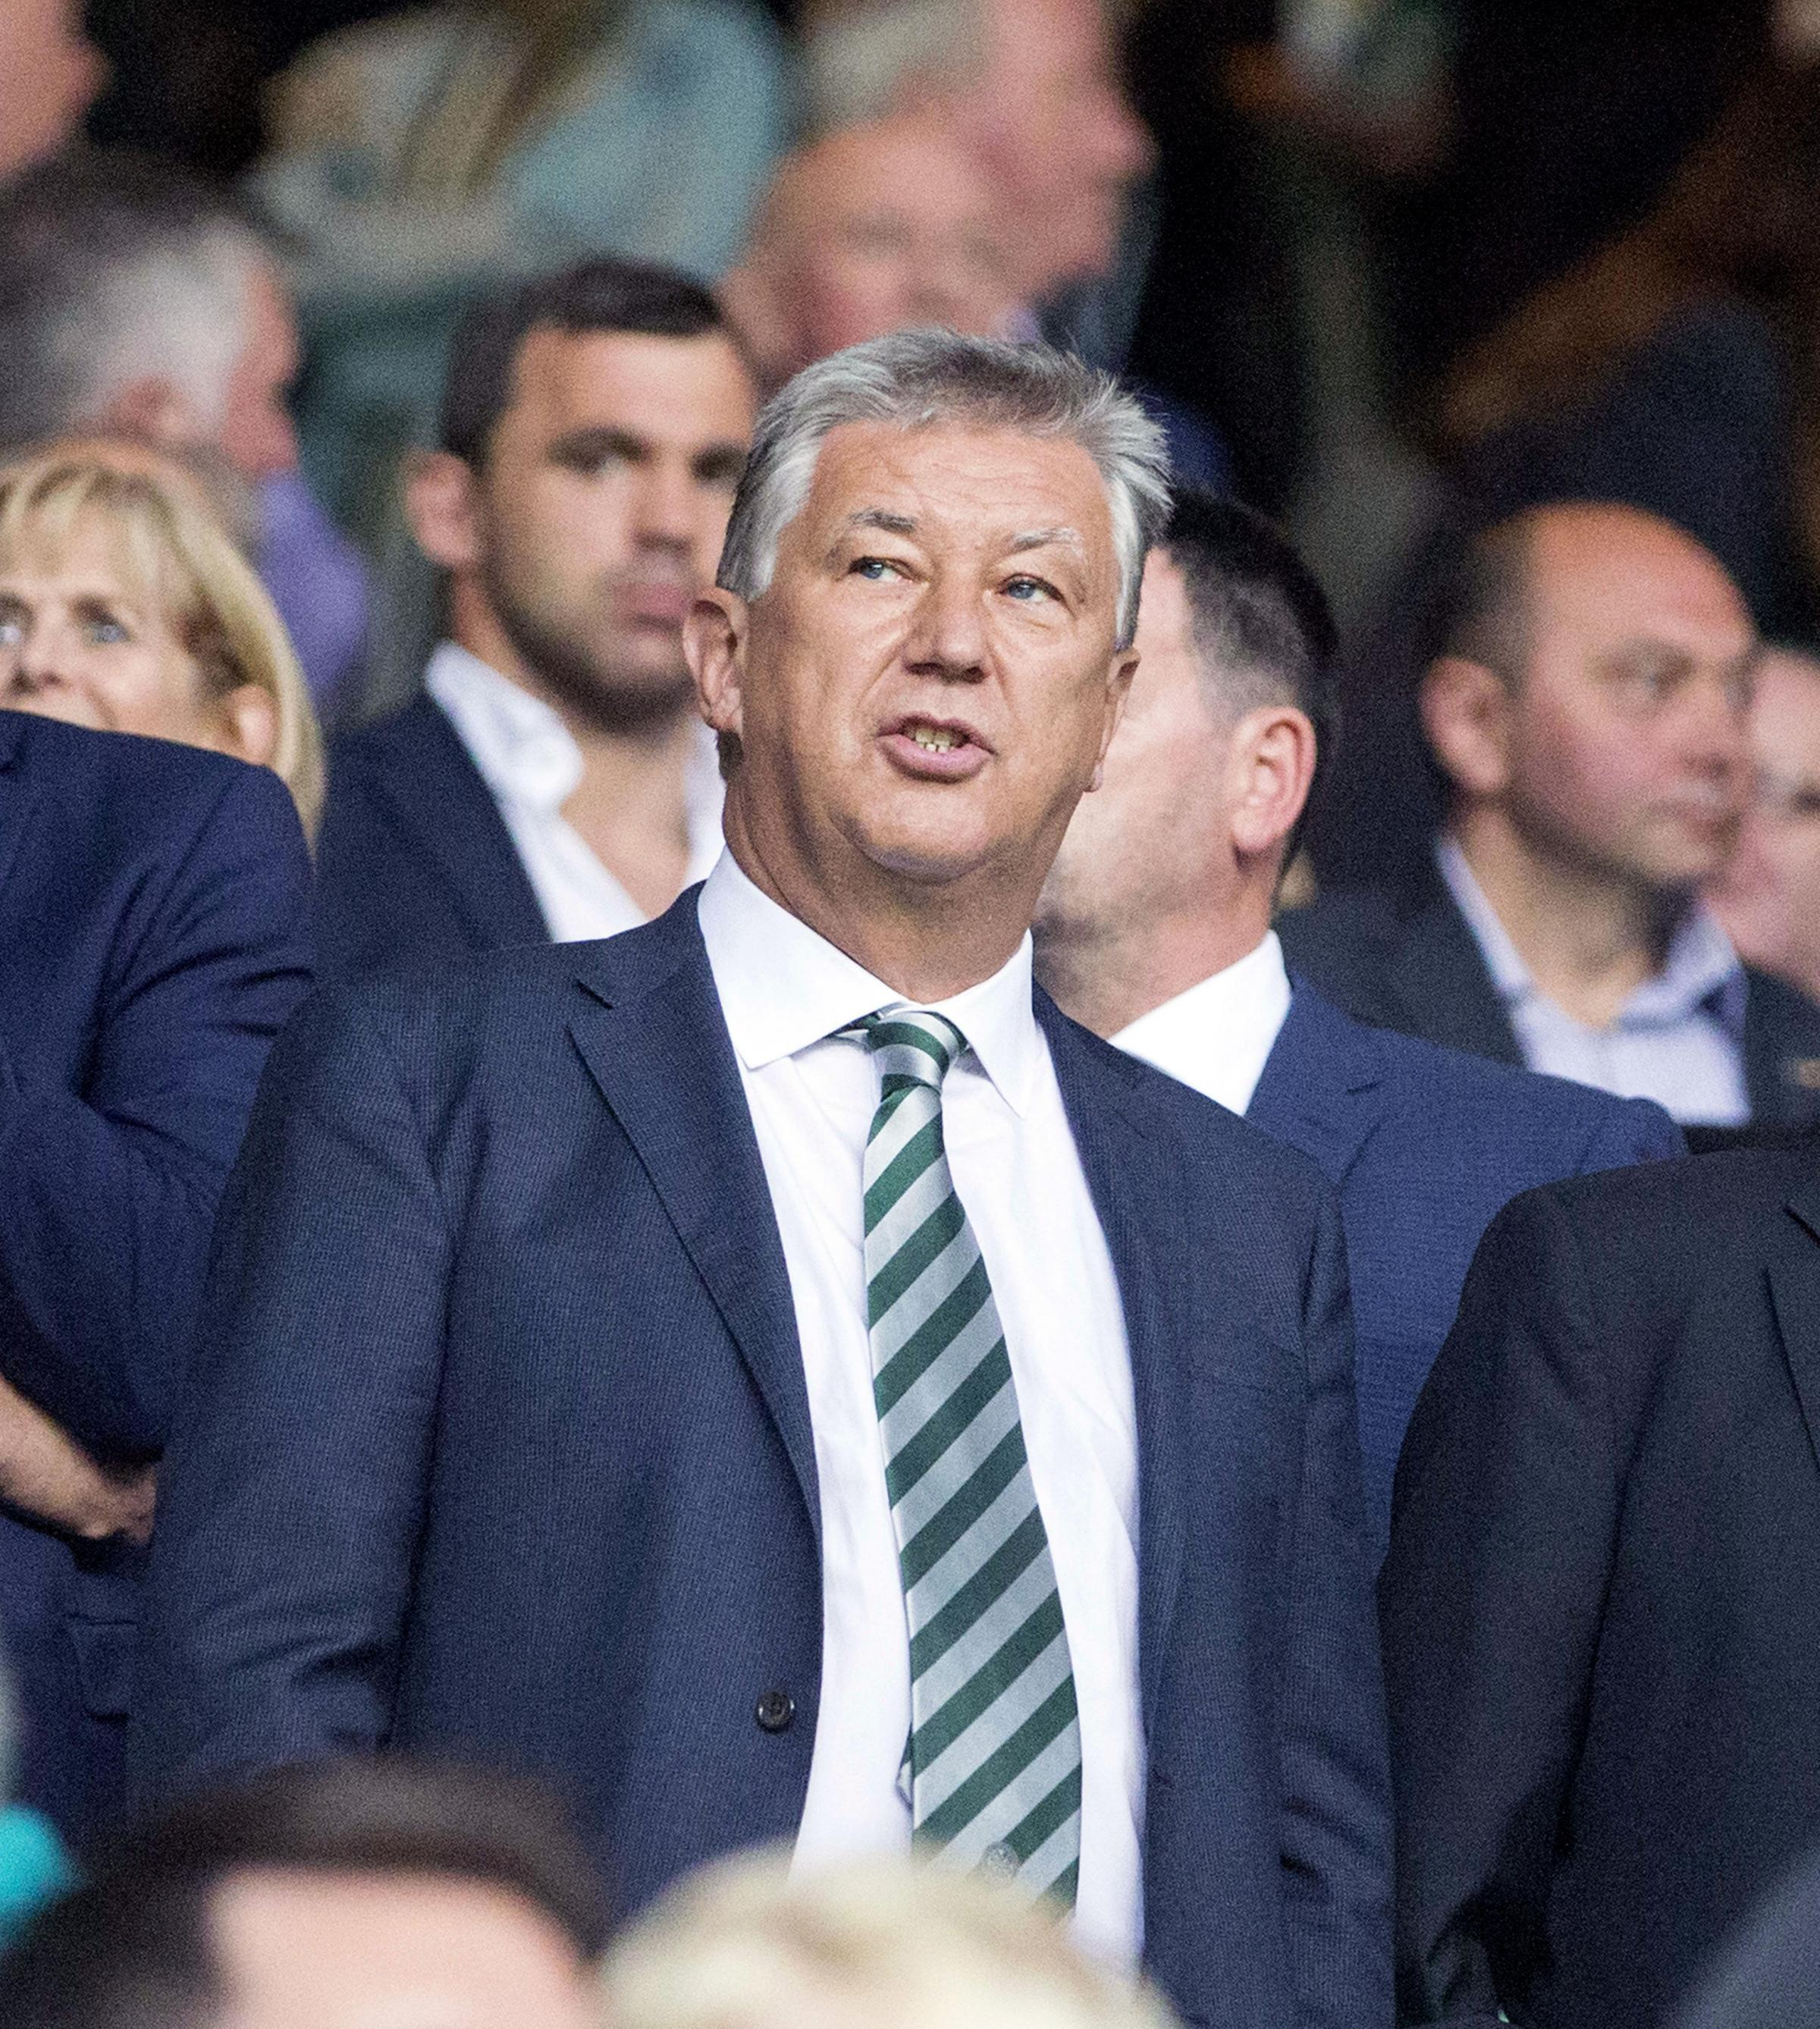 Peter Lawwell, the Celtic chief executive, believes Celtic deserve to be the dominant team in Scotland. Photo credit should read Jeff Holmes/PA Wire.